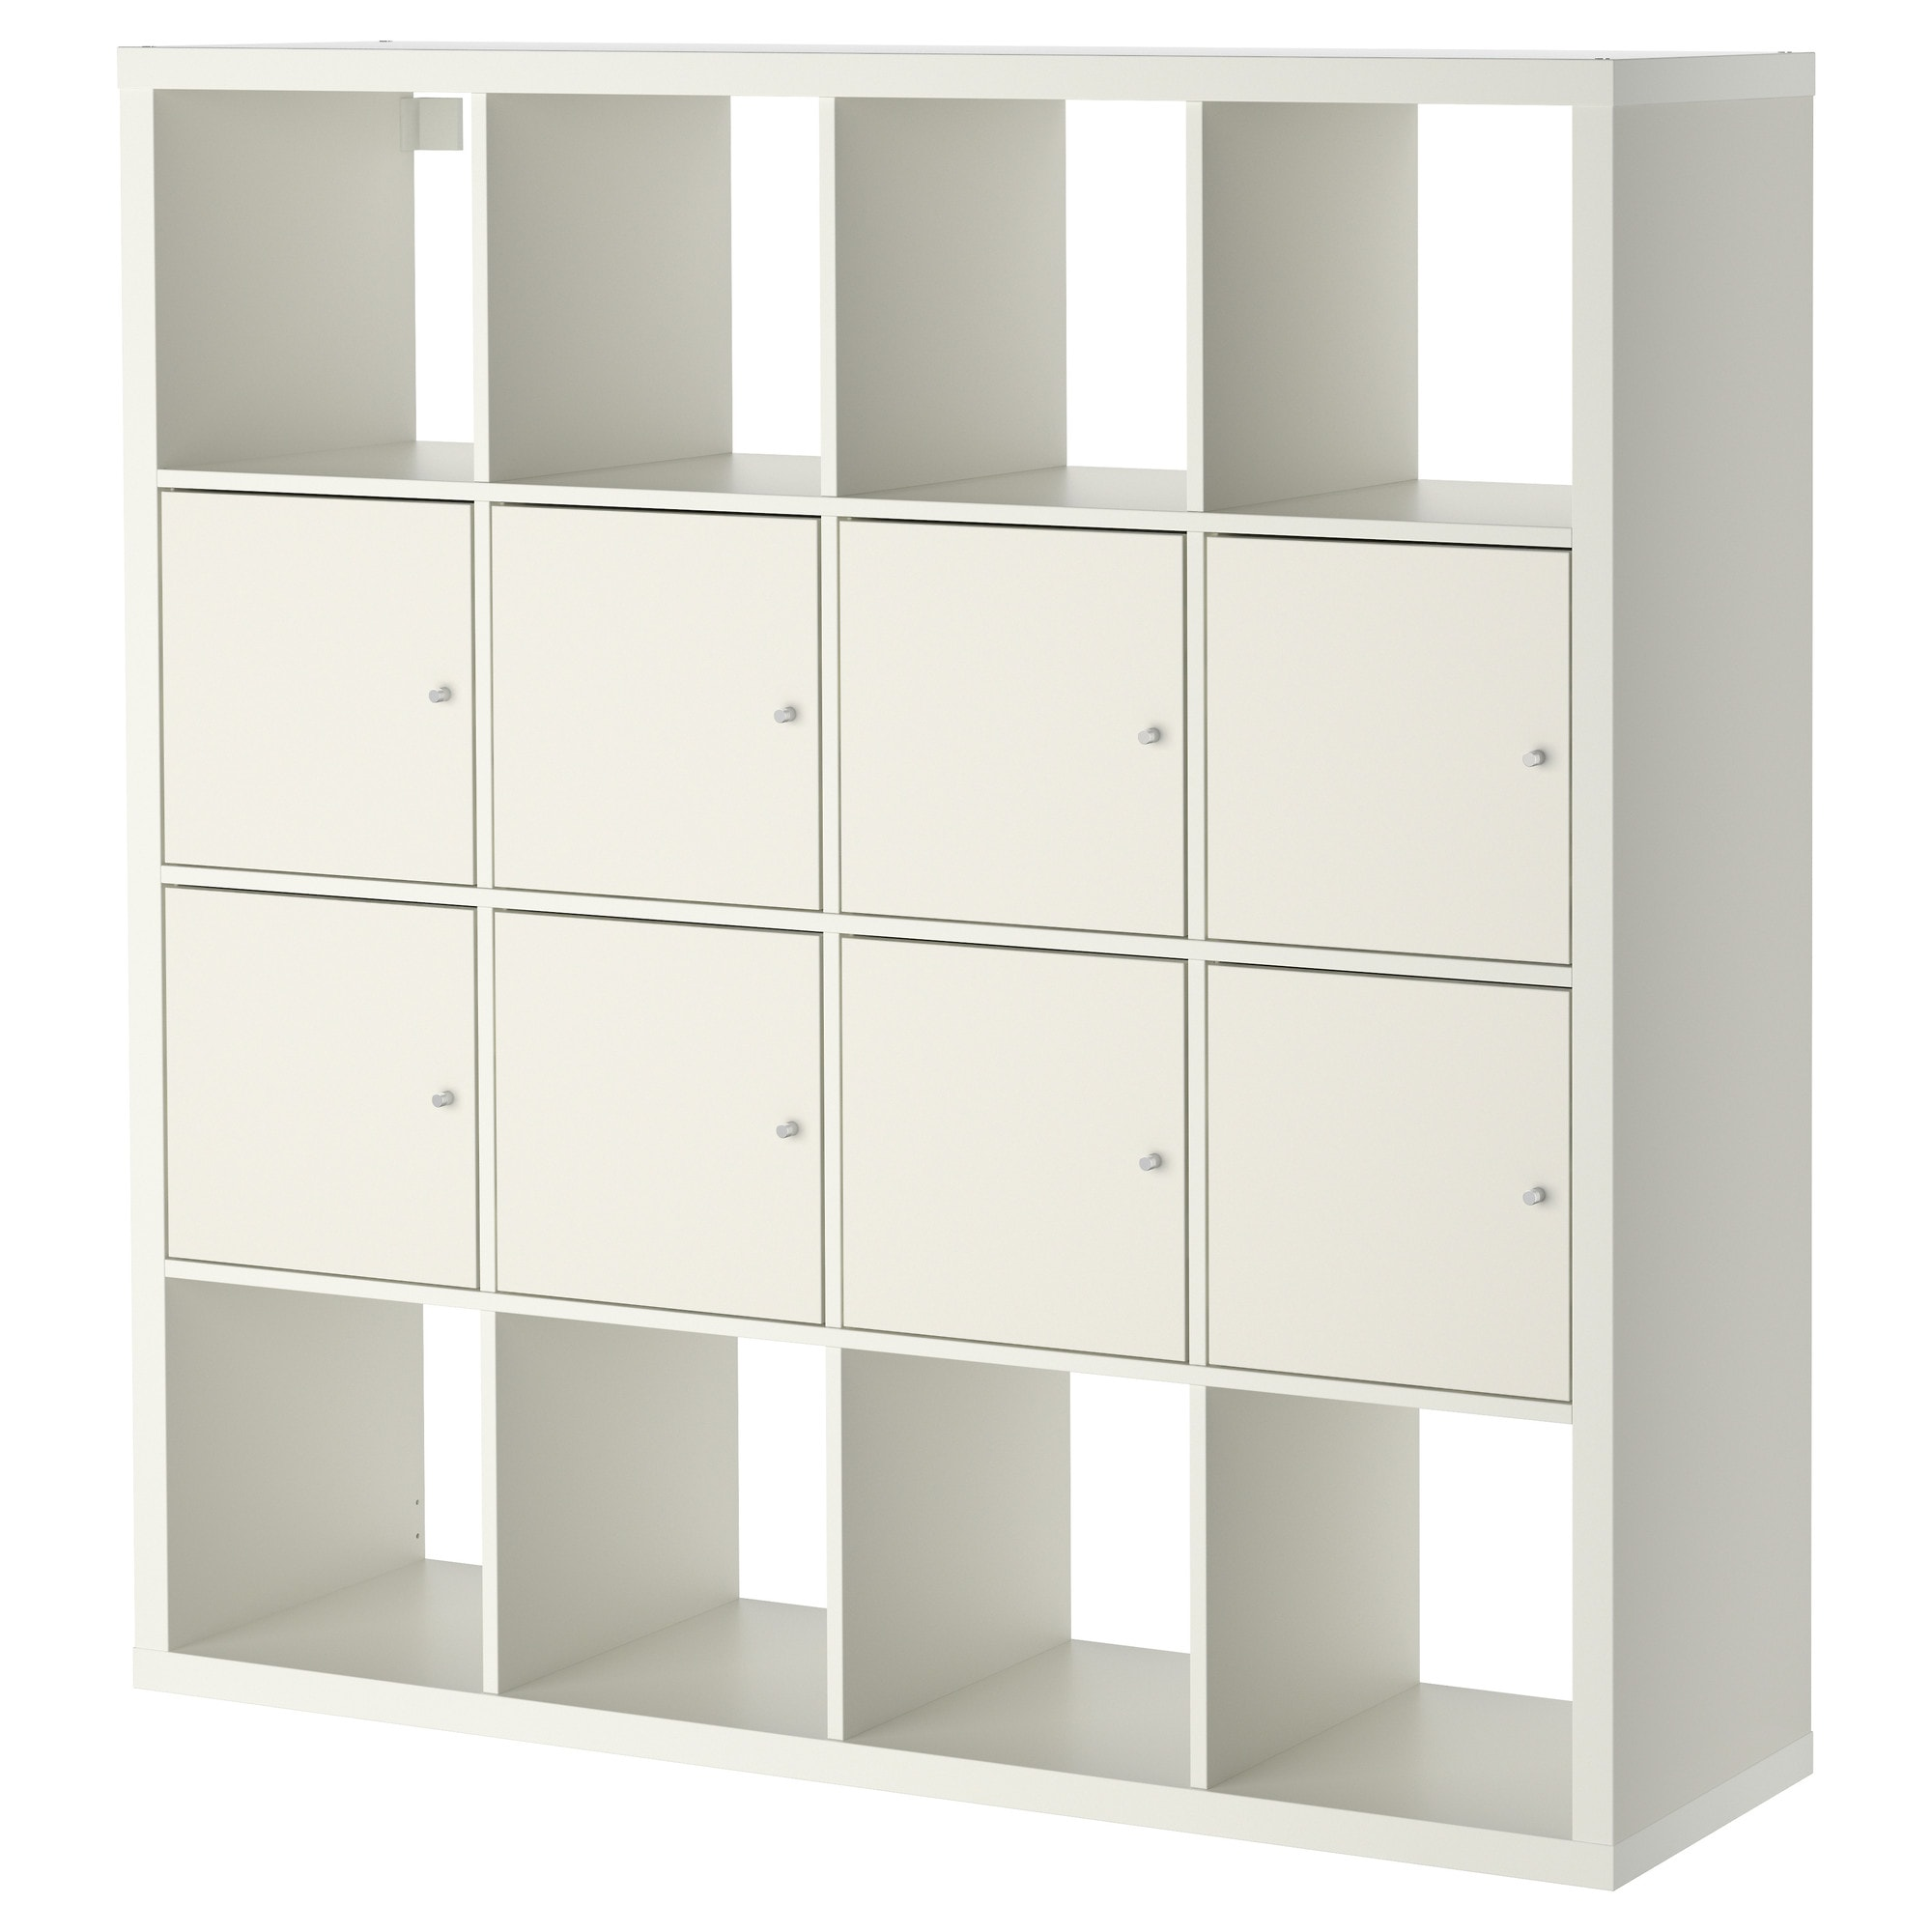 Kallax Shelf Unit With 8 Inserts White 57 7 8x57 7 8 Ikea